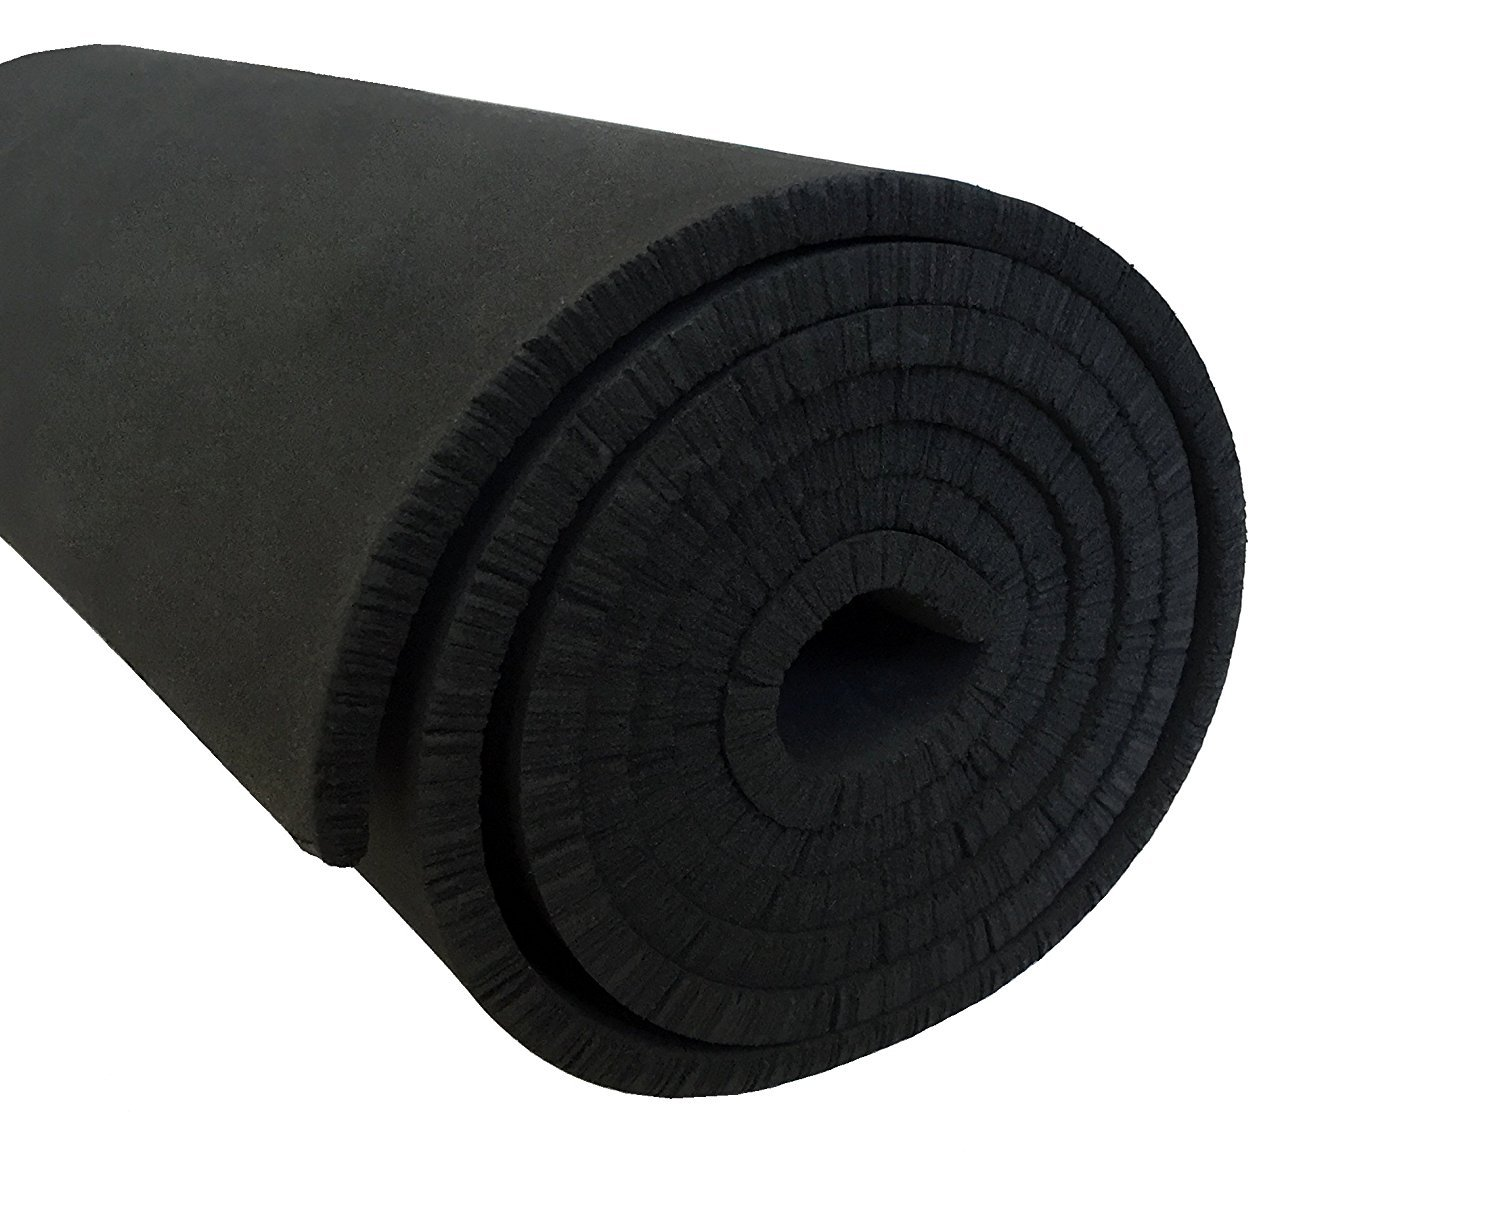 Xcel Large Toolbox Liner Heavy Duty Neoprene Sheet 1829 mm X 432 mm X 6.35 mm Extra Thick Made in USA 1829 mm x 432 mm x 6.35 mm Rubber Sheets Ez Cut Non-Slip Foam Rubber Toolbox /& Drawer Liner